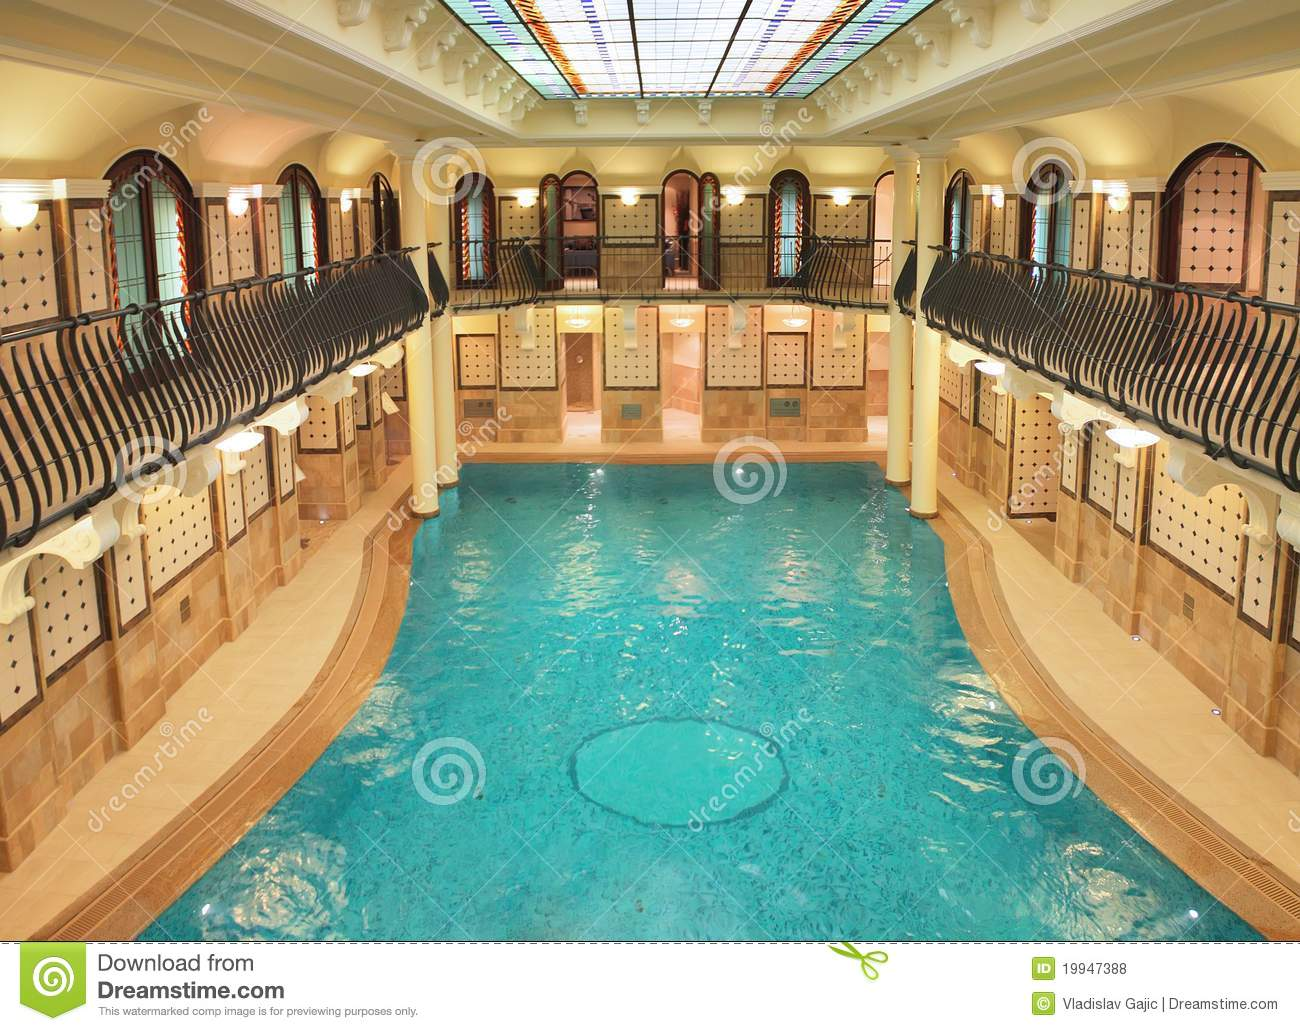 Pool in the spa center royalty free stock photos image for Salons center